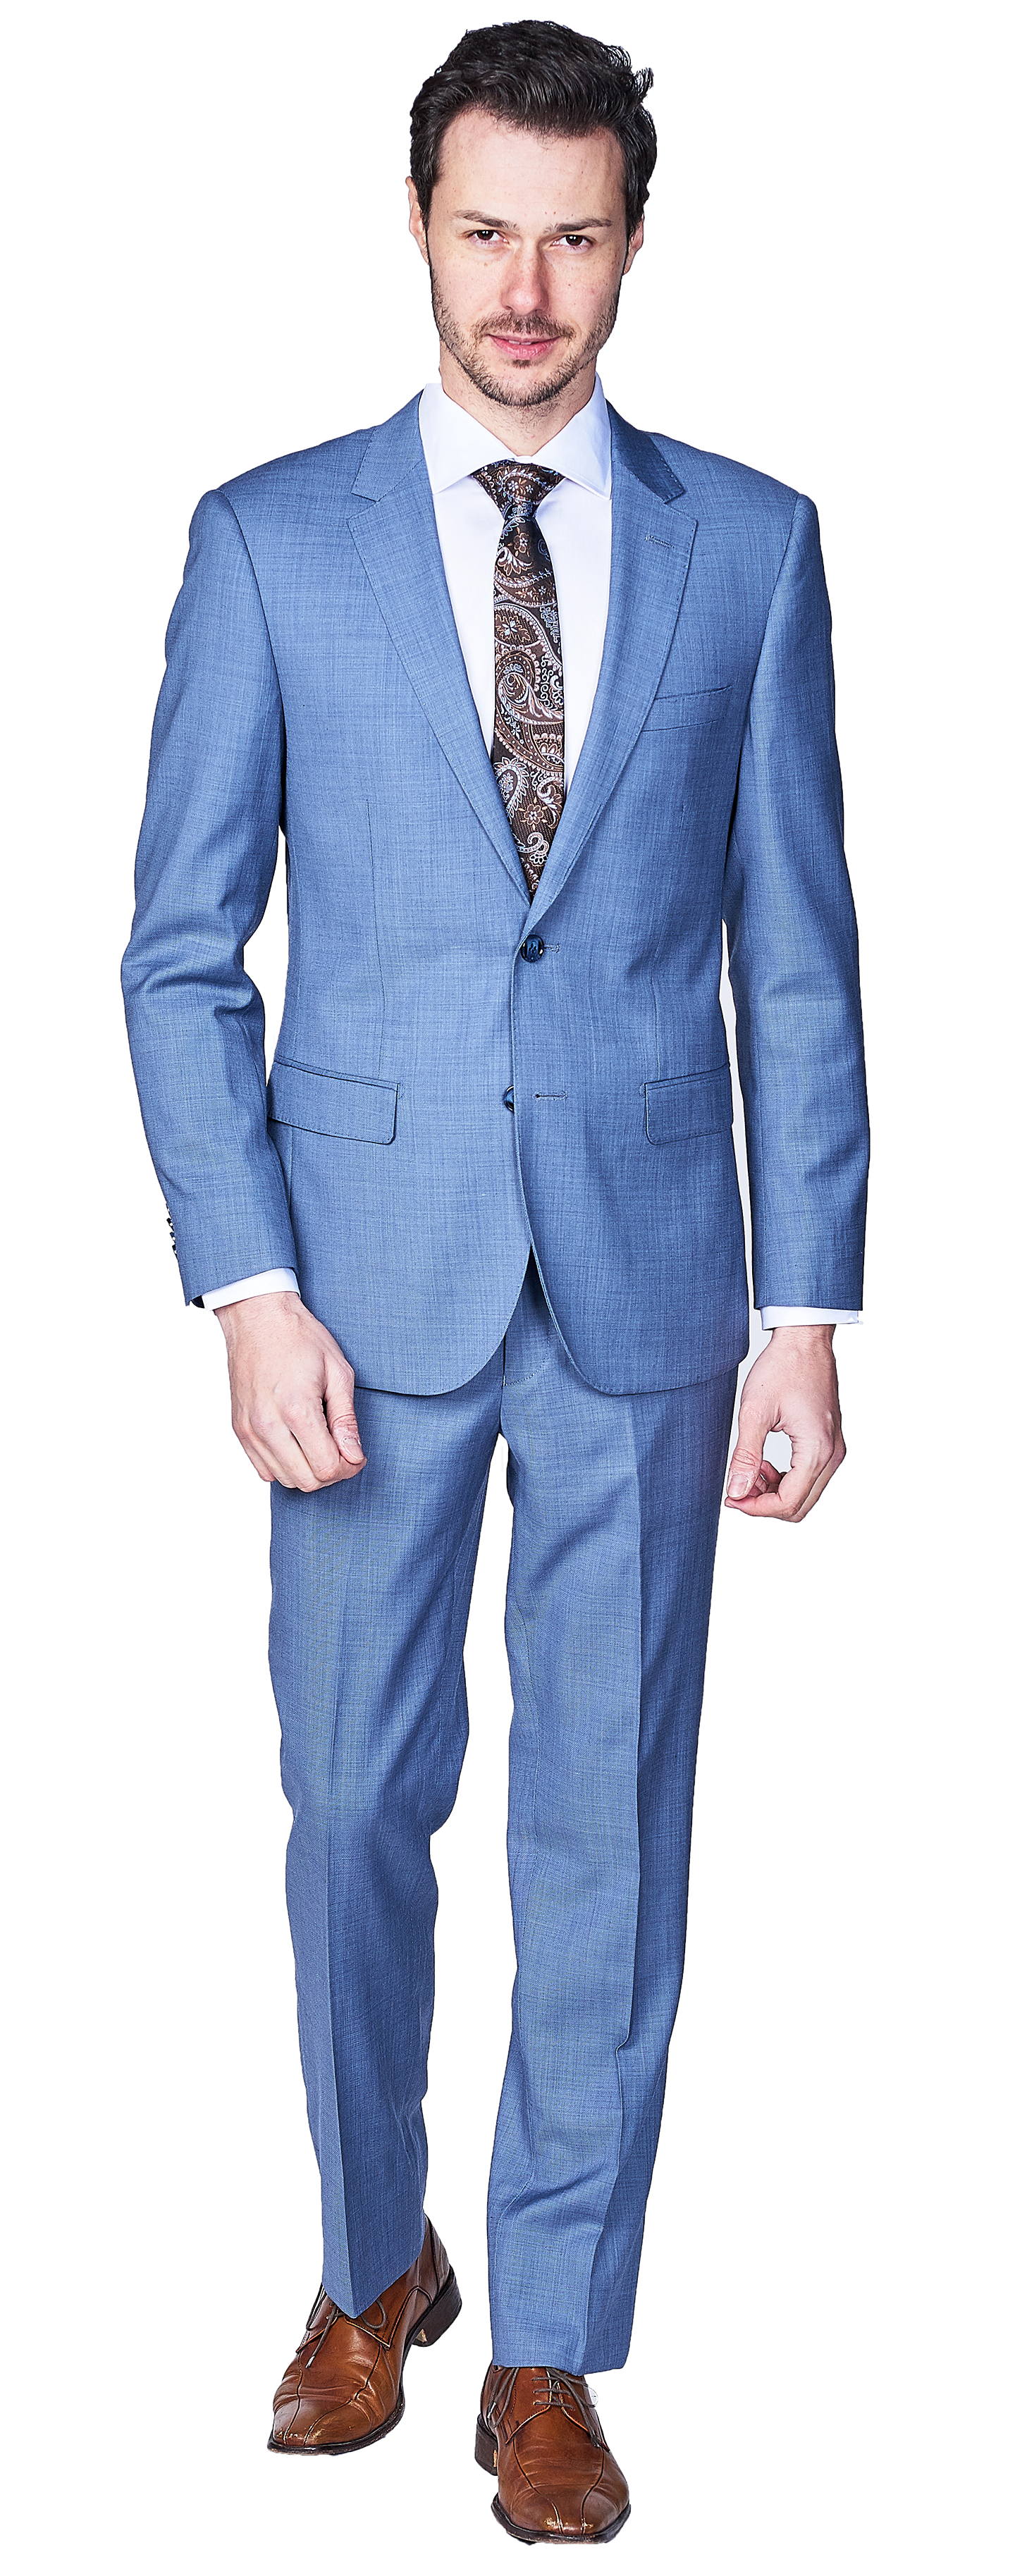 Giovanni Bresciani Lite Blue Sharkskin SuitGB-261$850.00 USD.png